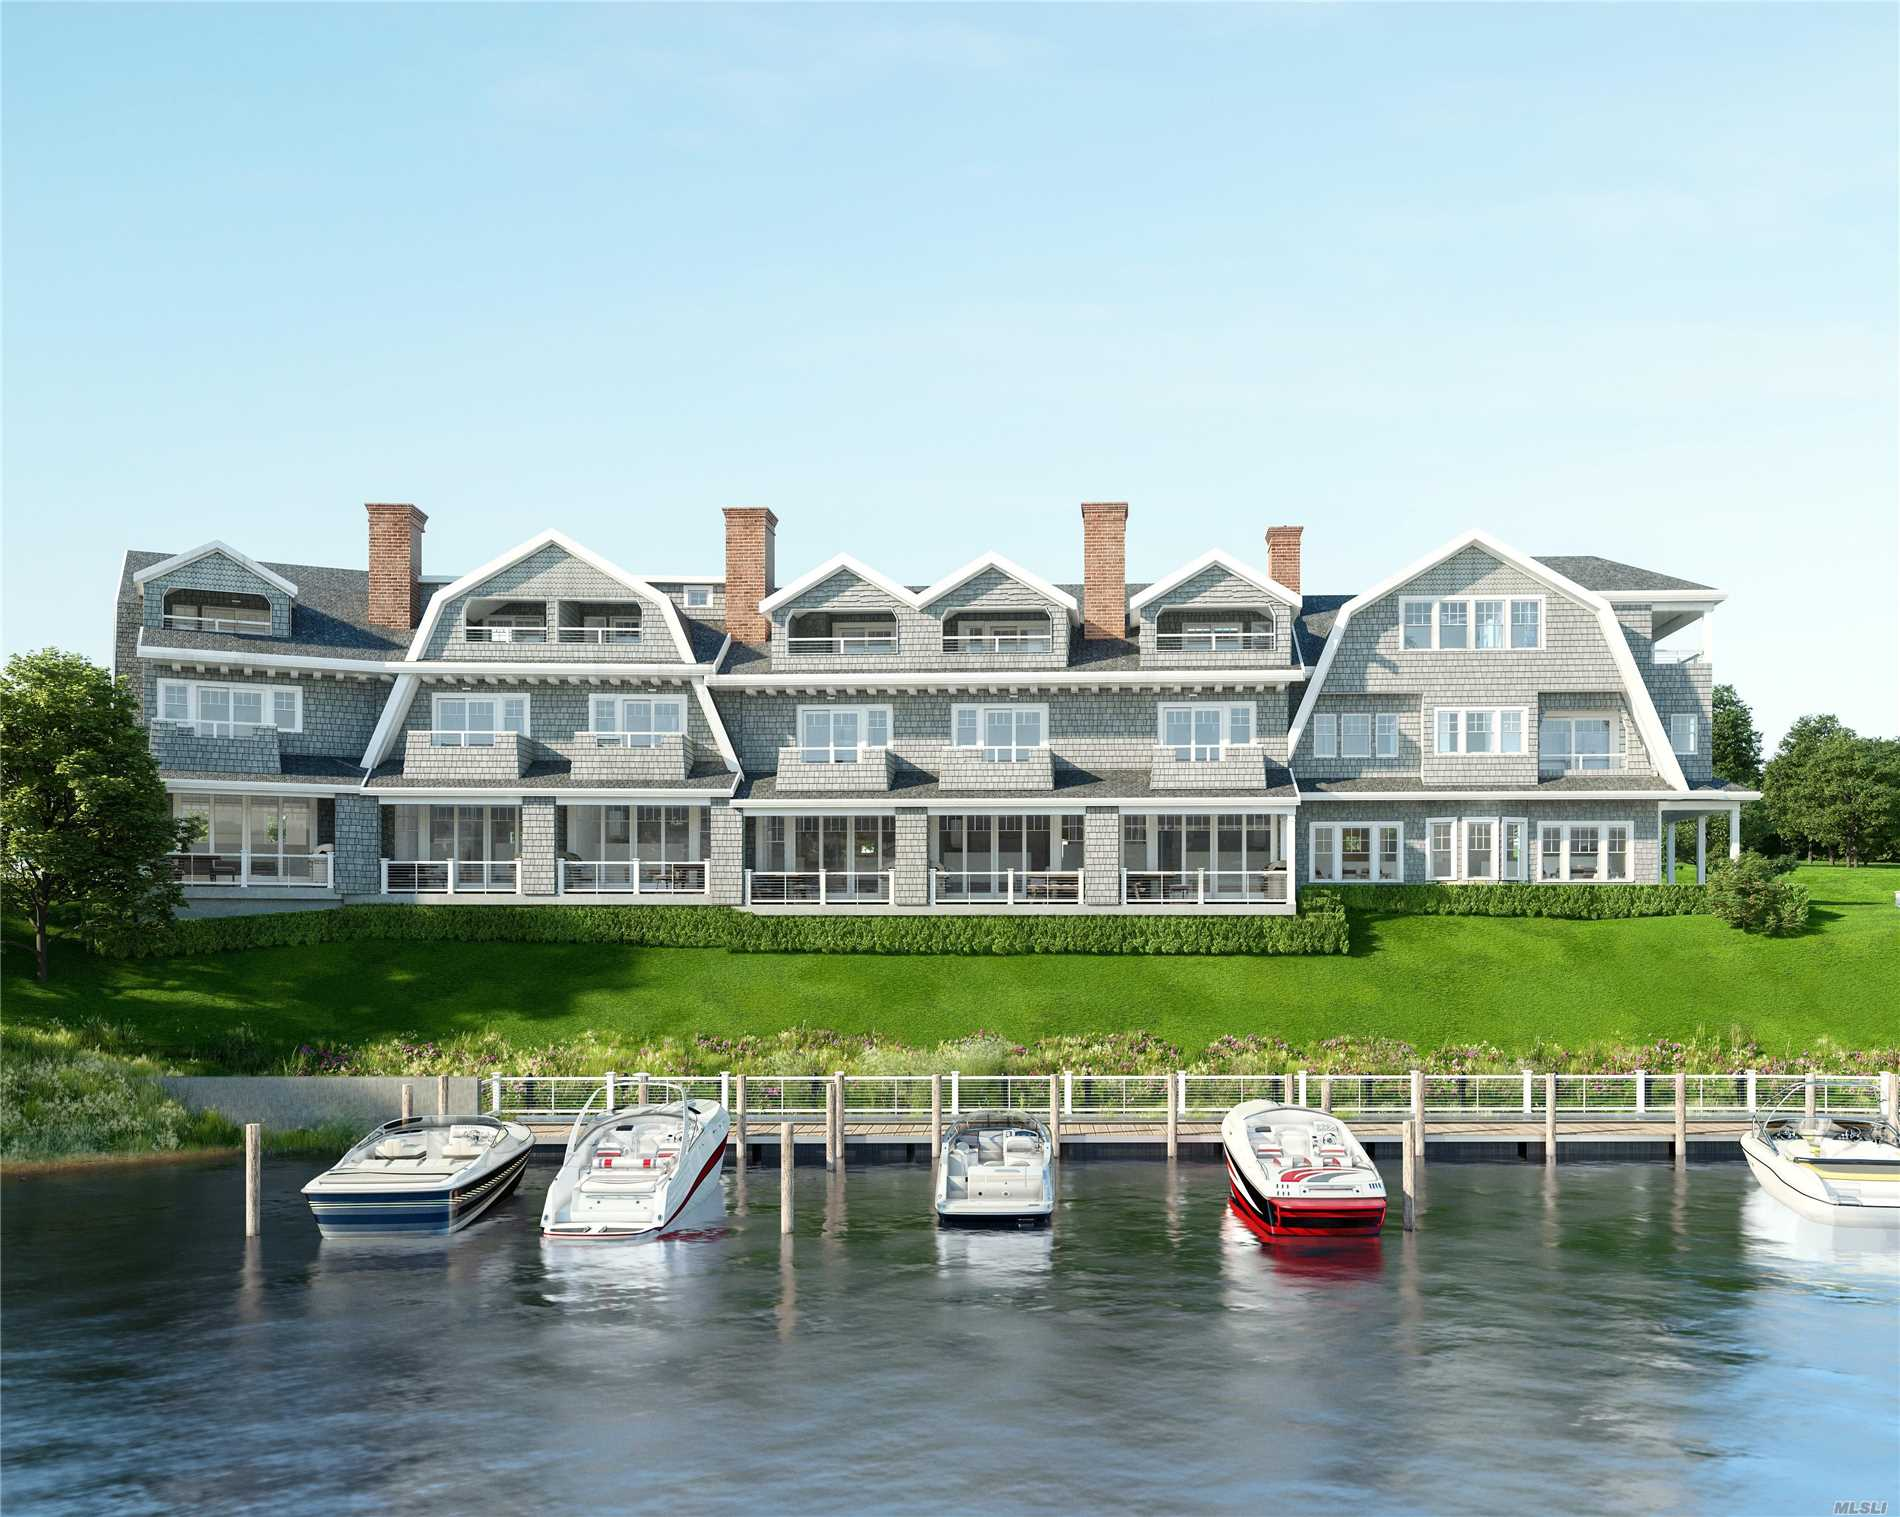 Property for sale at 63 Old Boathouse Lane # 201, Hampton Bays NY 11946, Hampton Bays,  New York 11946